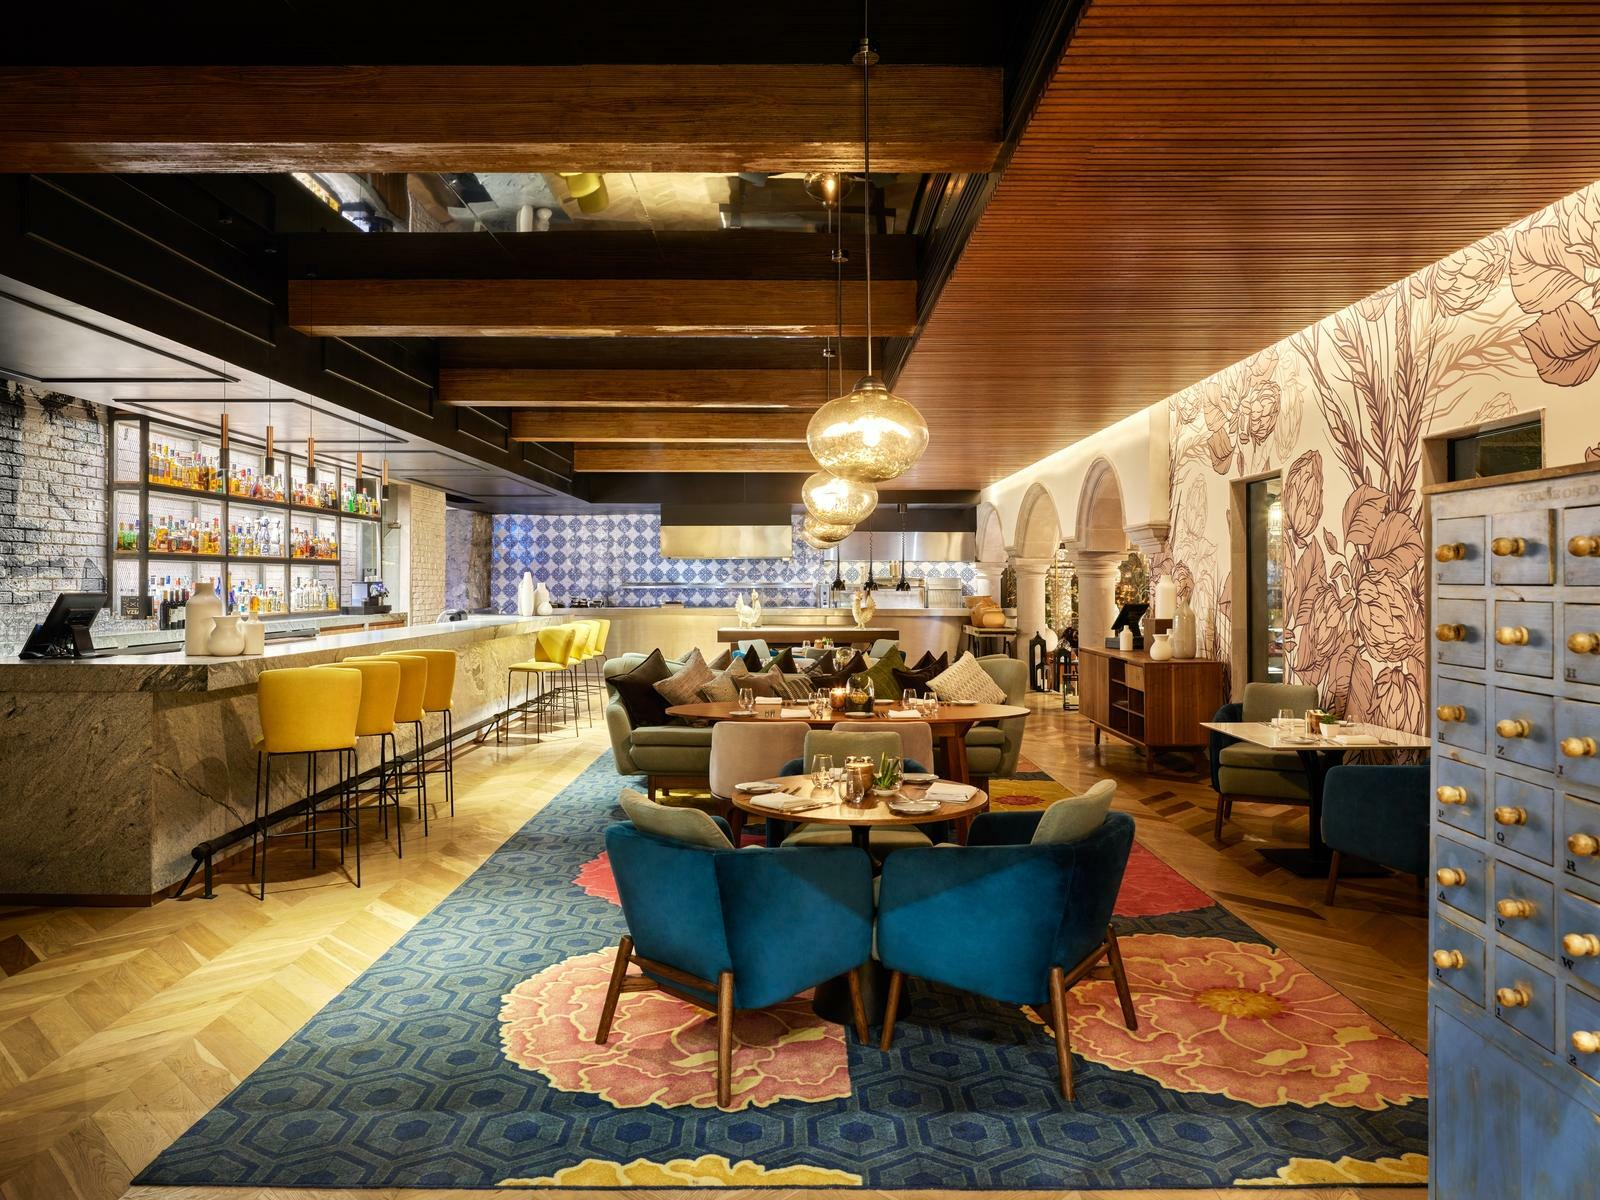 restaurant dining room with tables chairs and blue rug